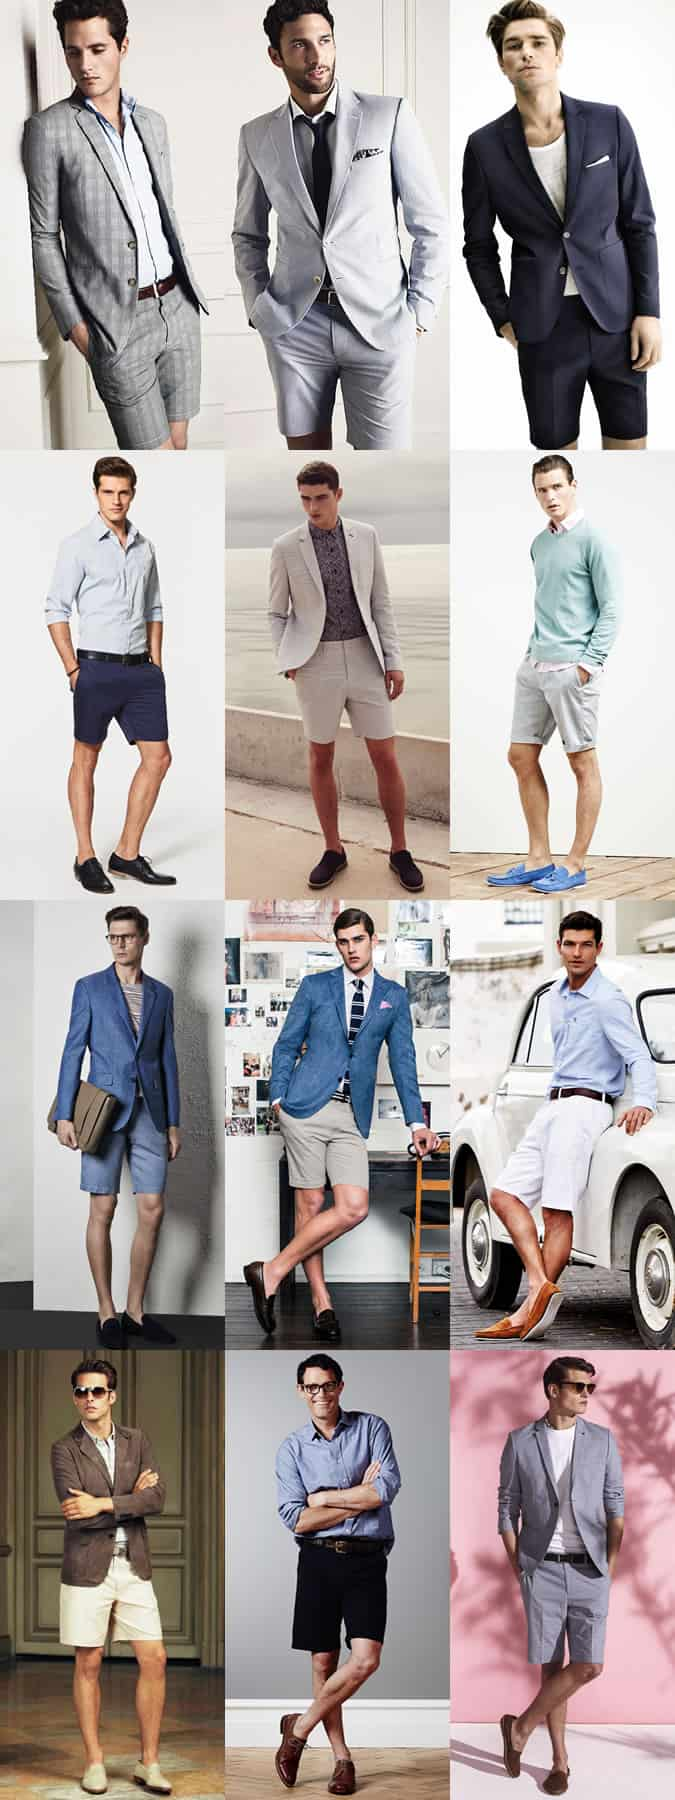 Men's Tailored Shorts and Shorts Suits - Casual Friday Outfit Inspiration Lookbook